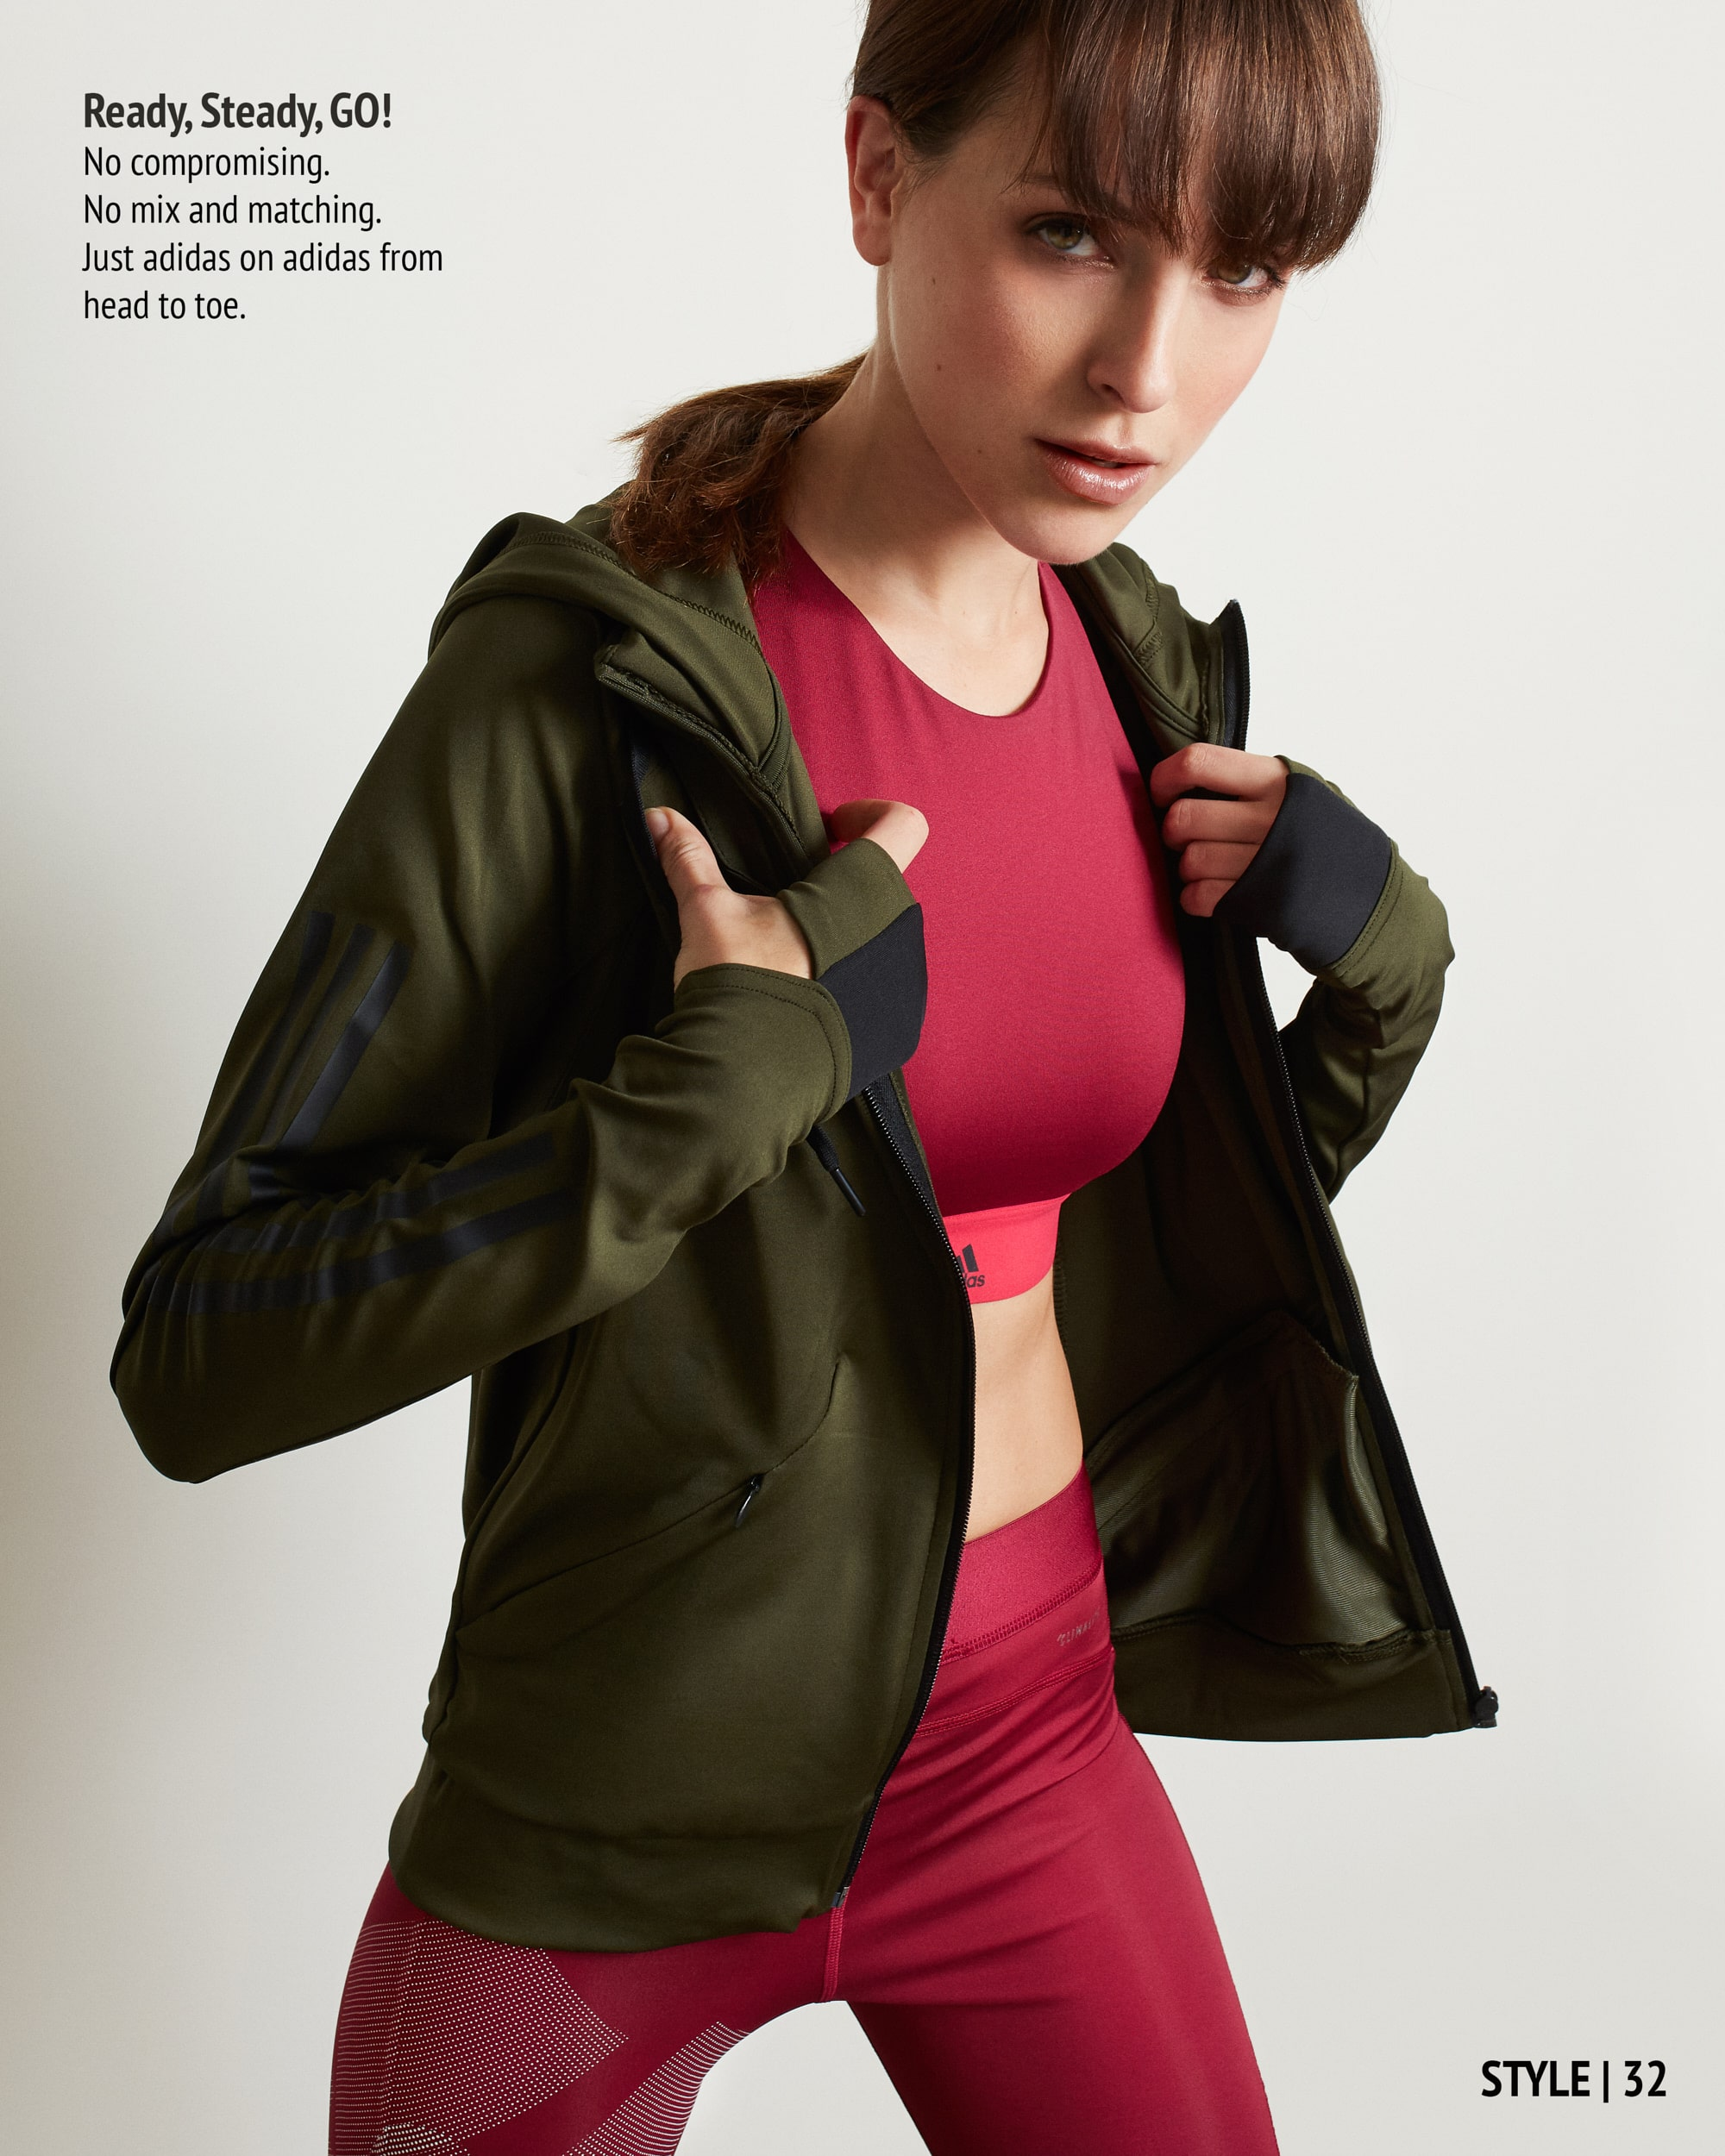 TIFFANY WINTELER Sport Editorial